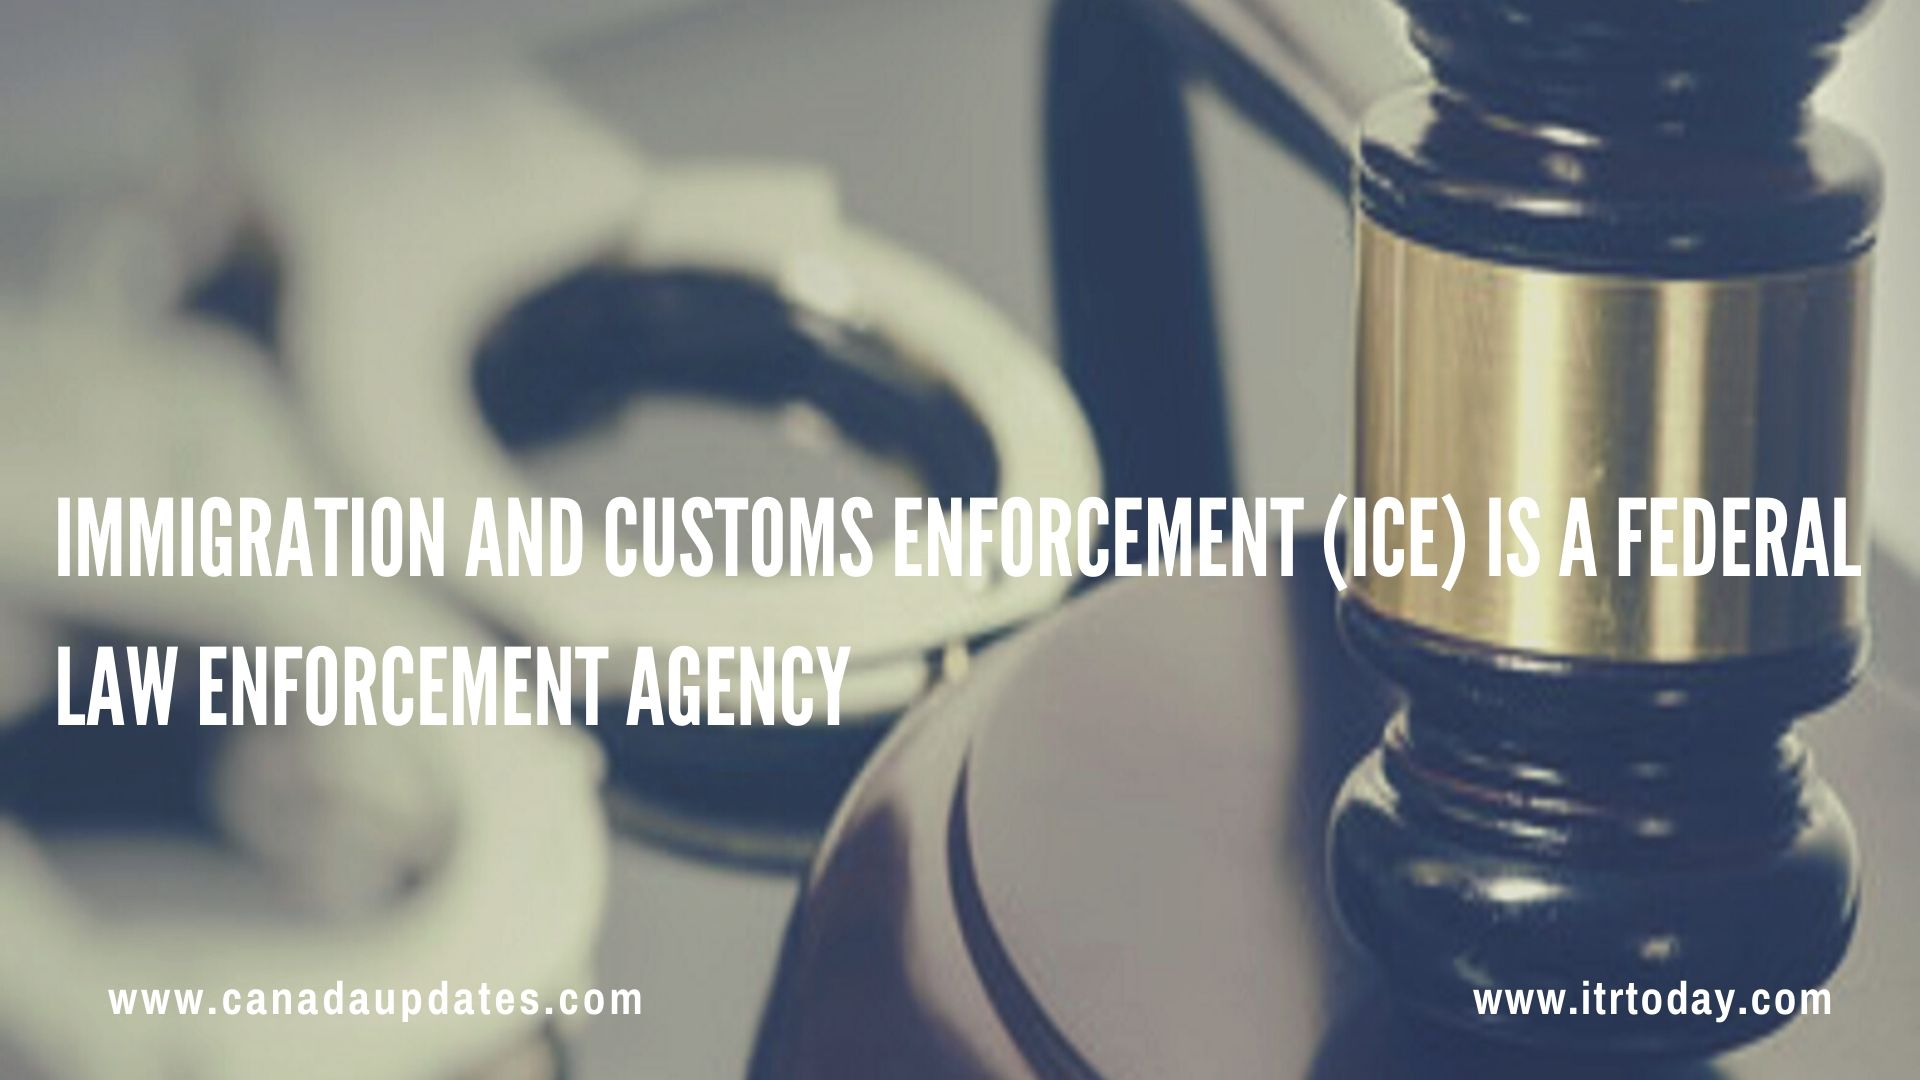 Your Rights If Detained by the U.S. ICE 3